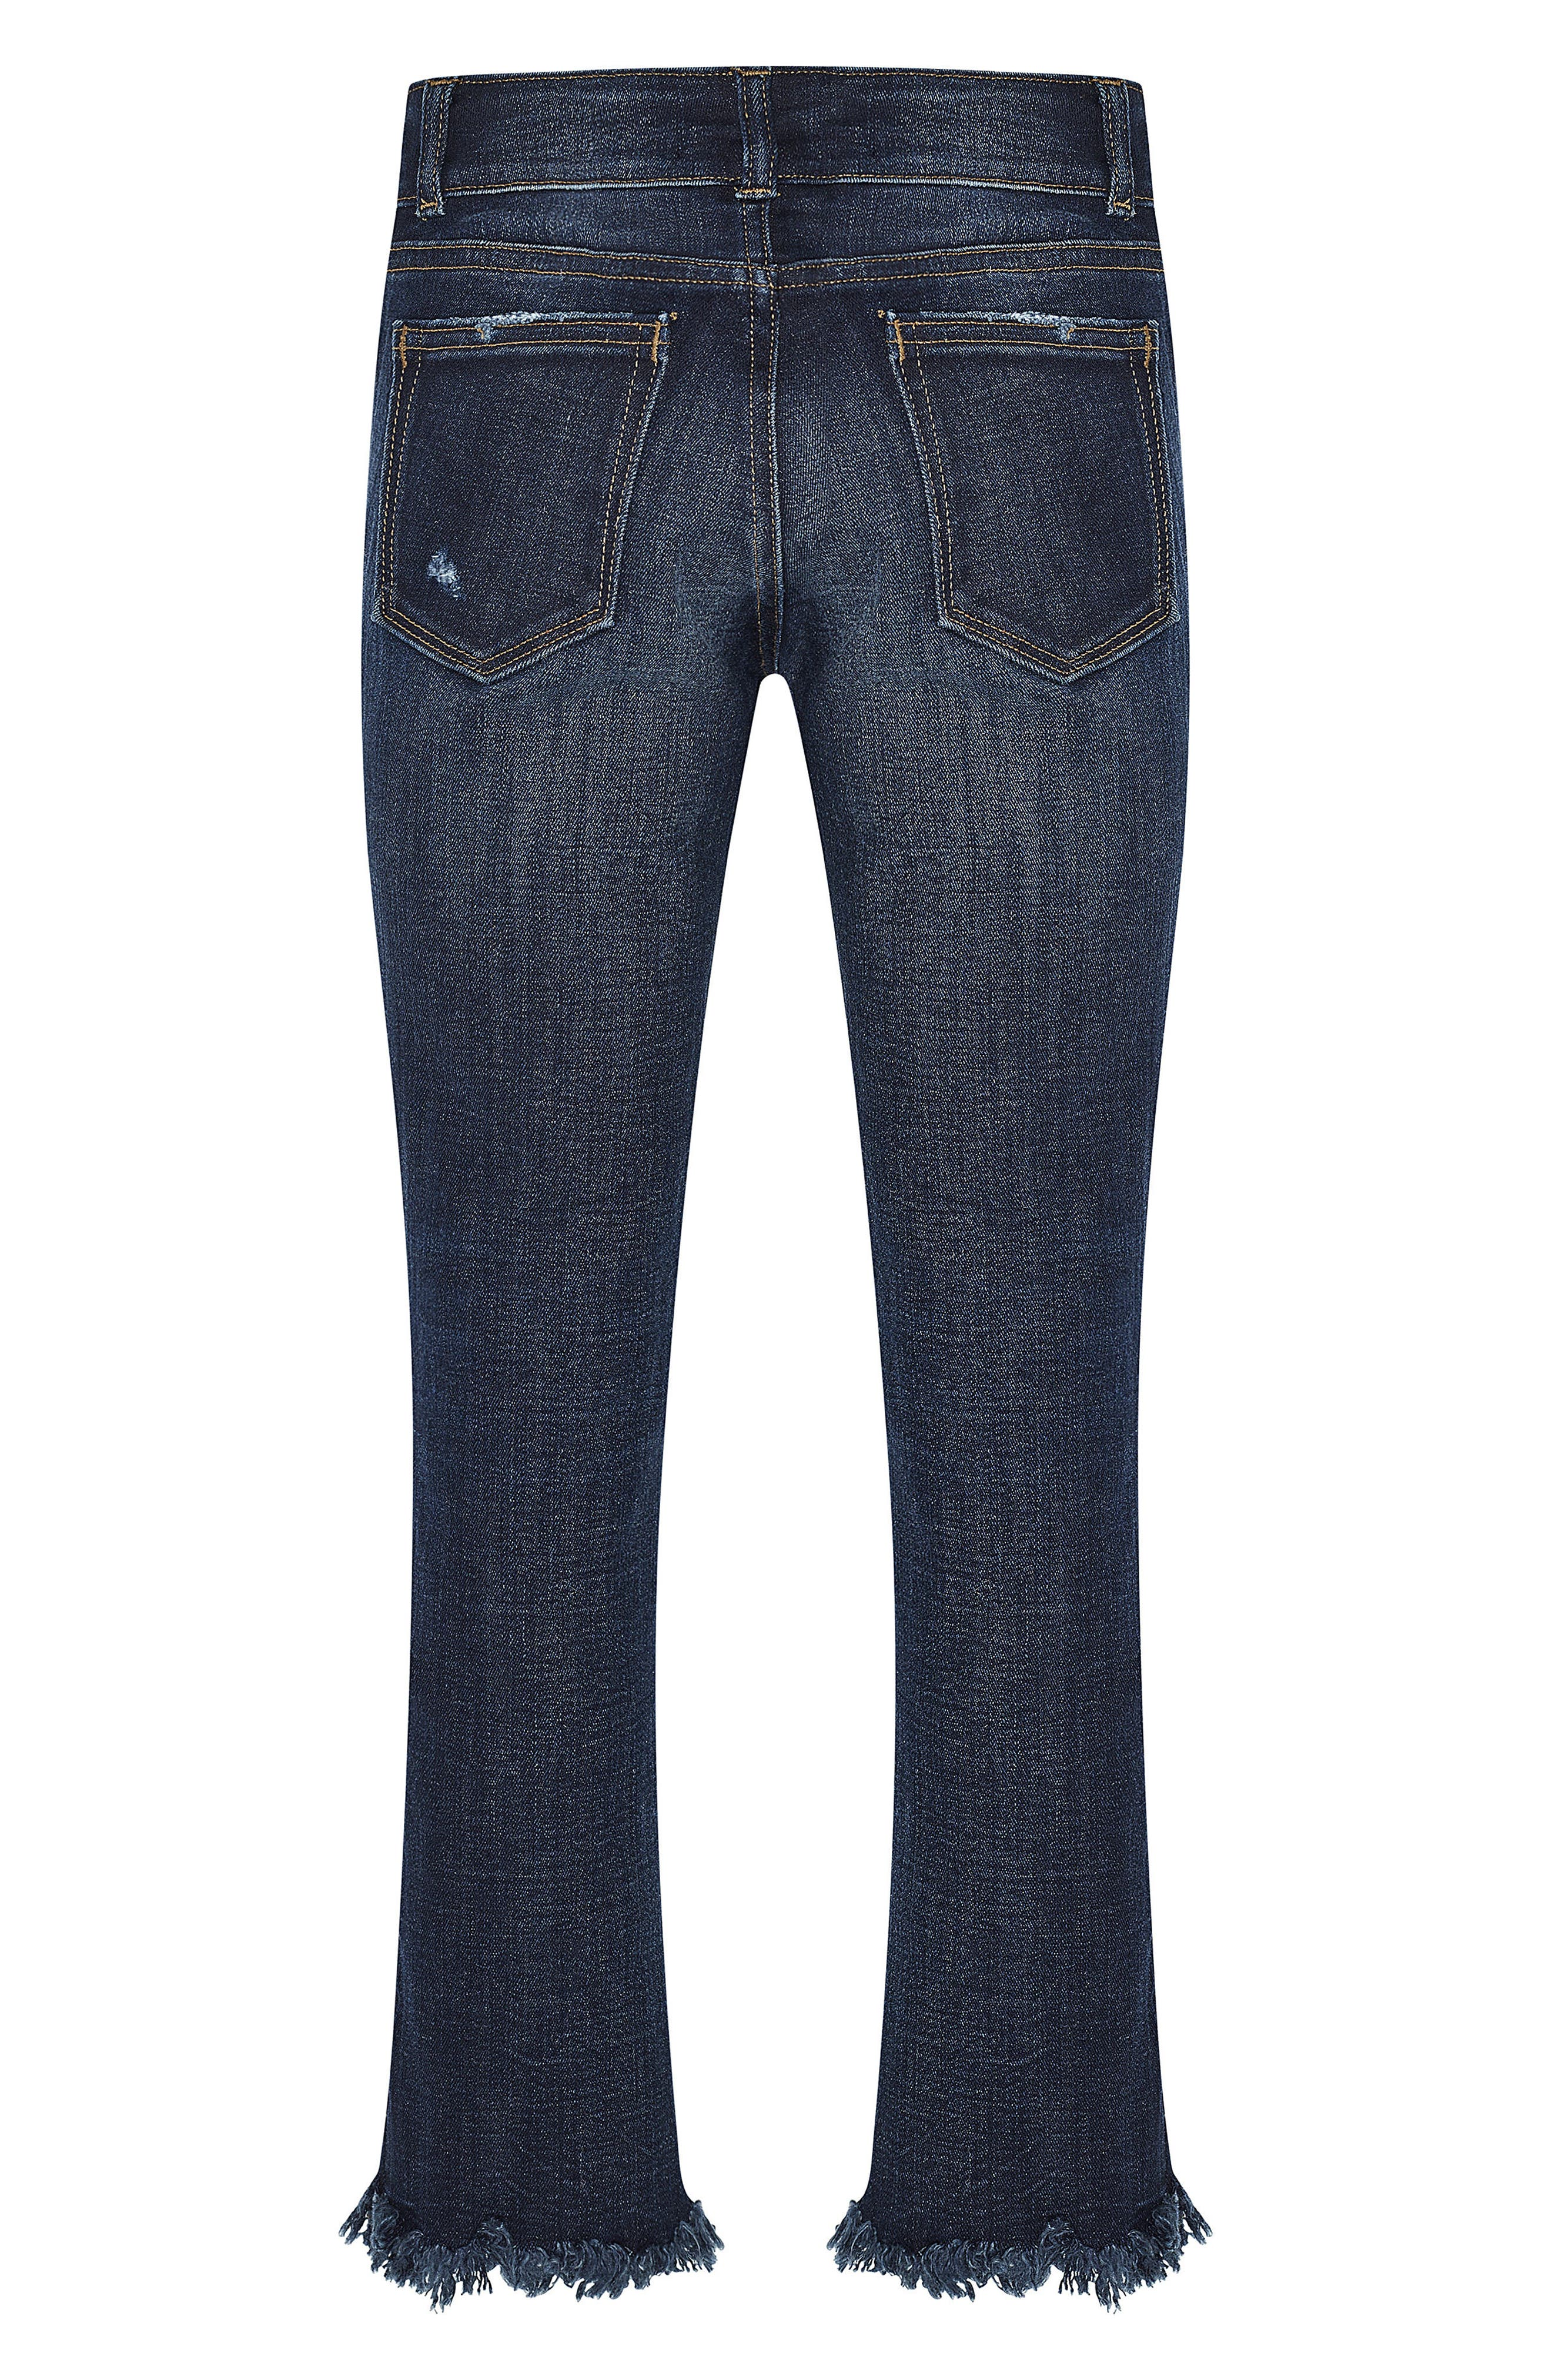 DL1916 Chloe Distressed Skinny Jeans,                             Alternate thumbnail 2, color,                             Willow